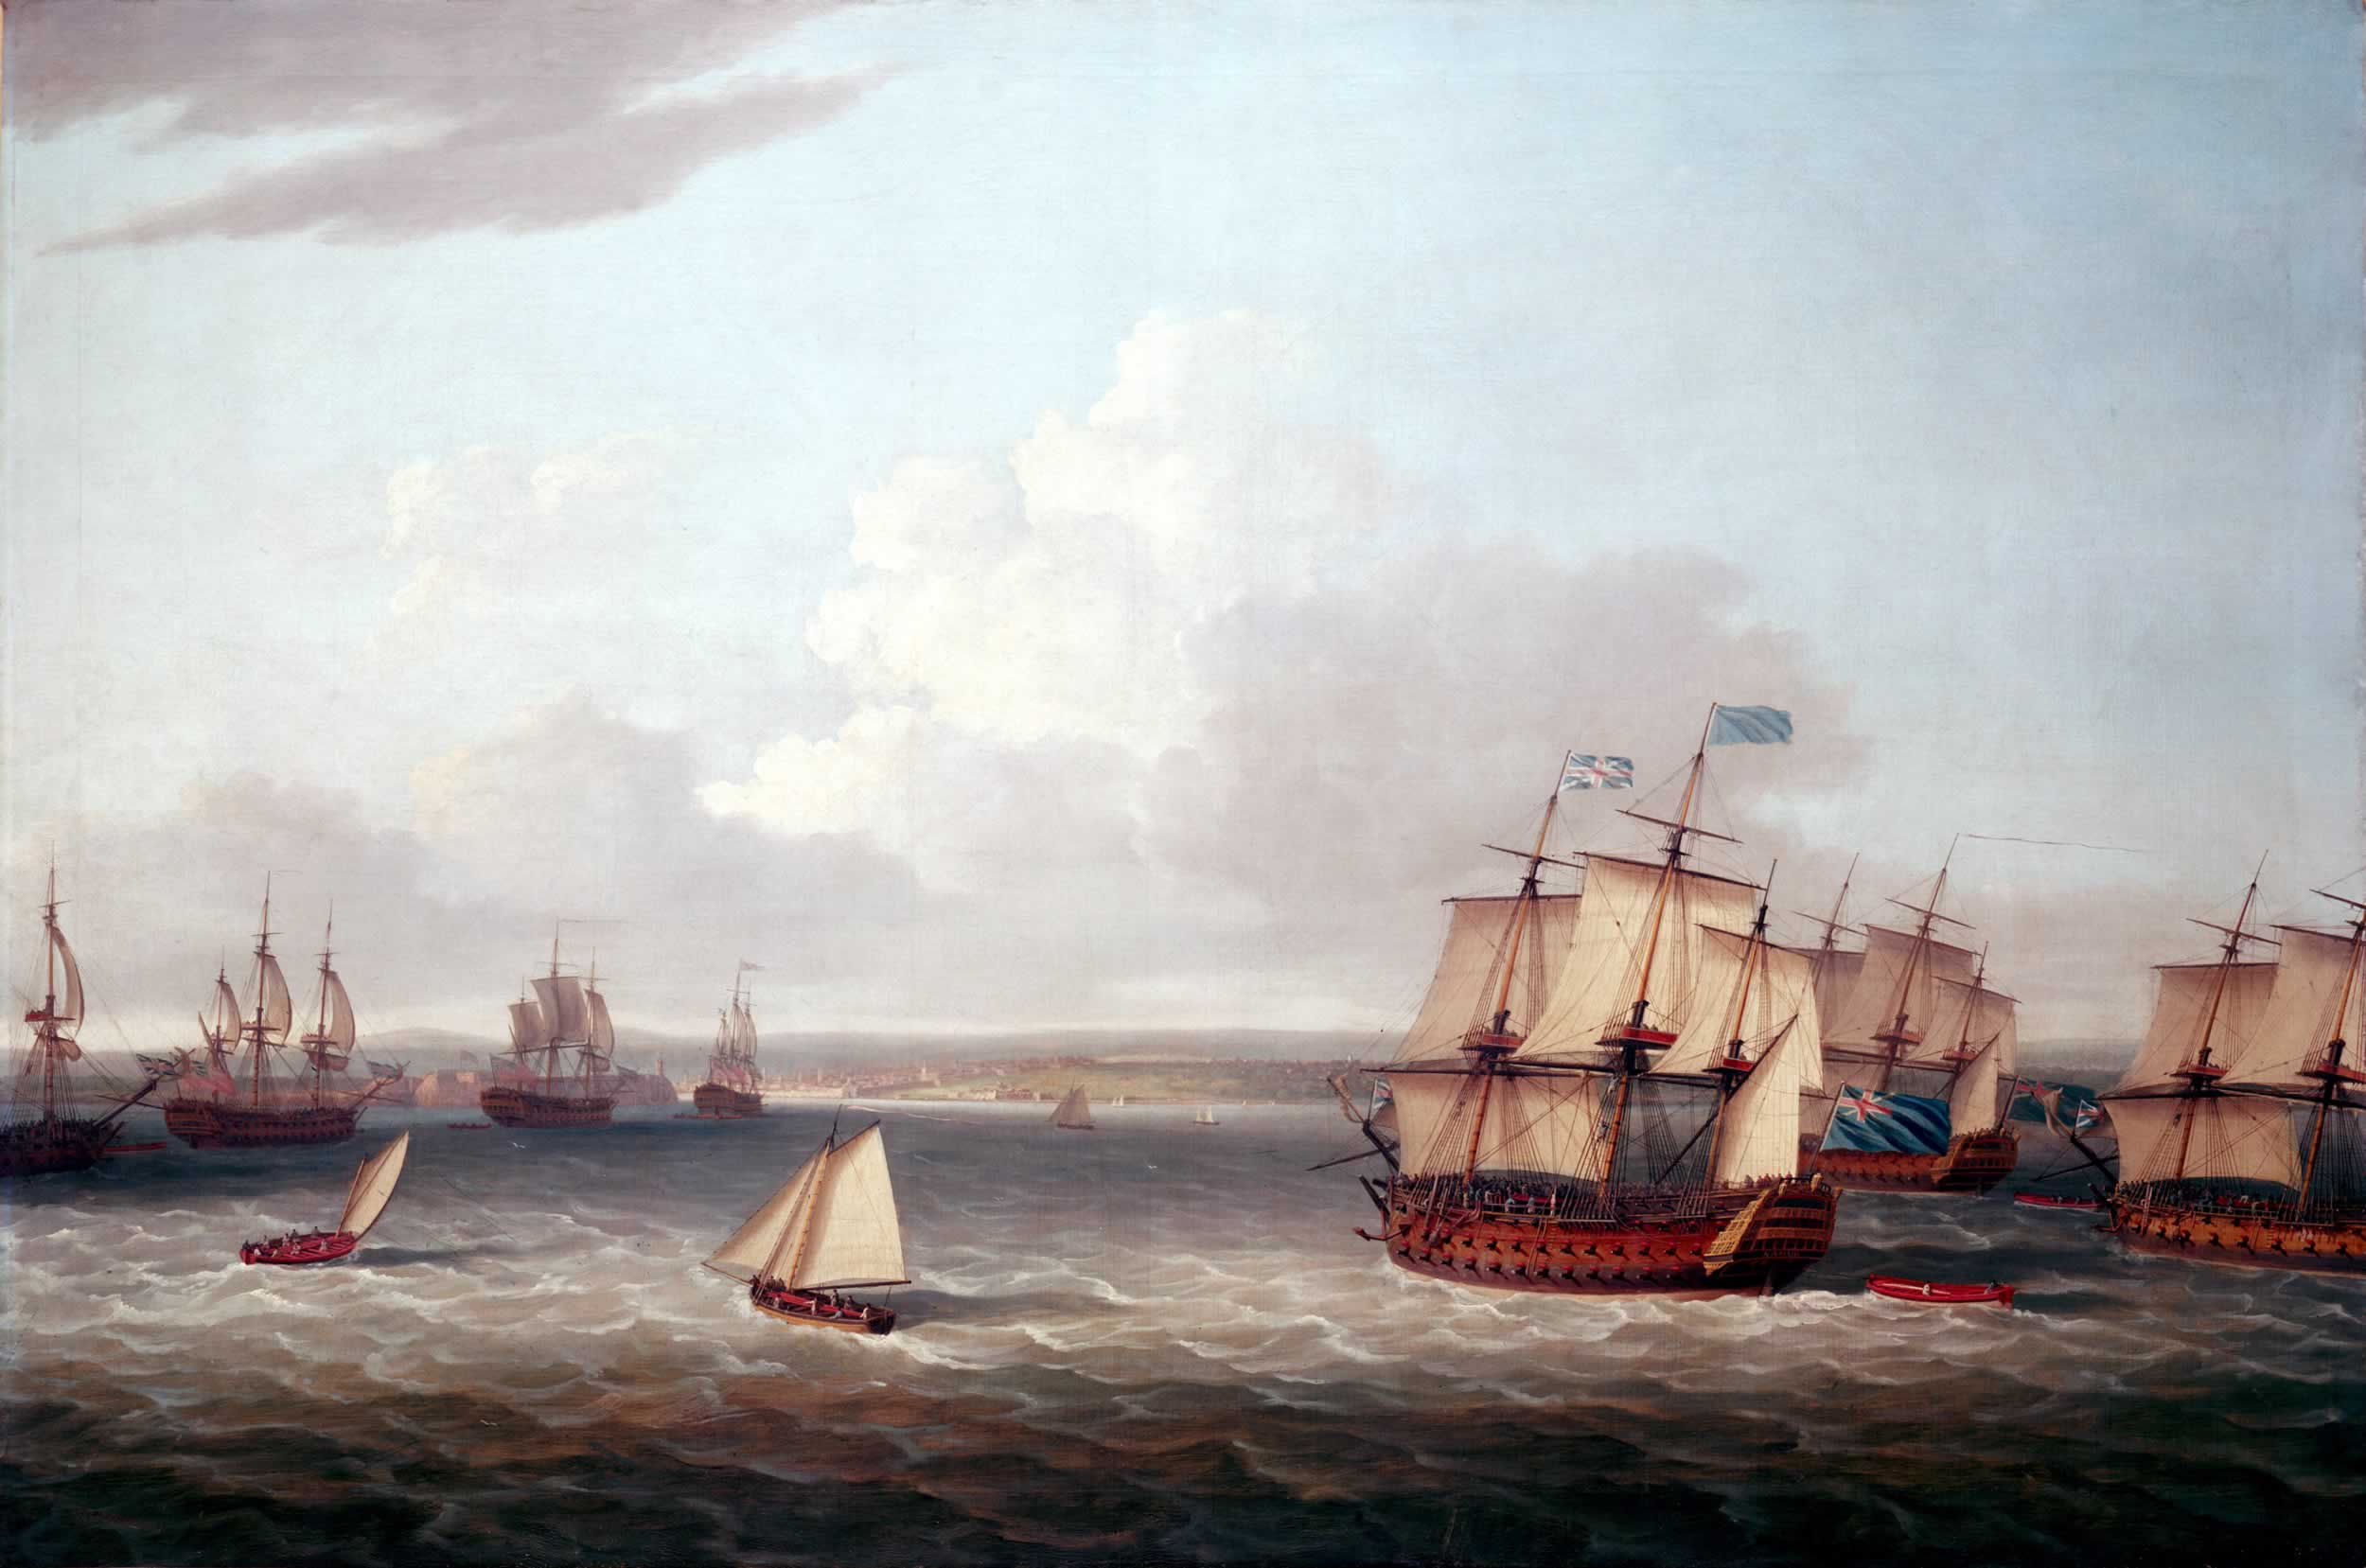 The British fleet closing in on Havana in 1762. Painting by Dominic Serres